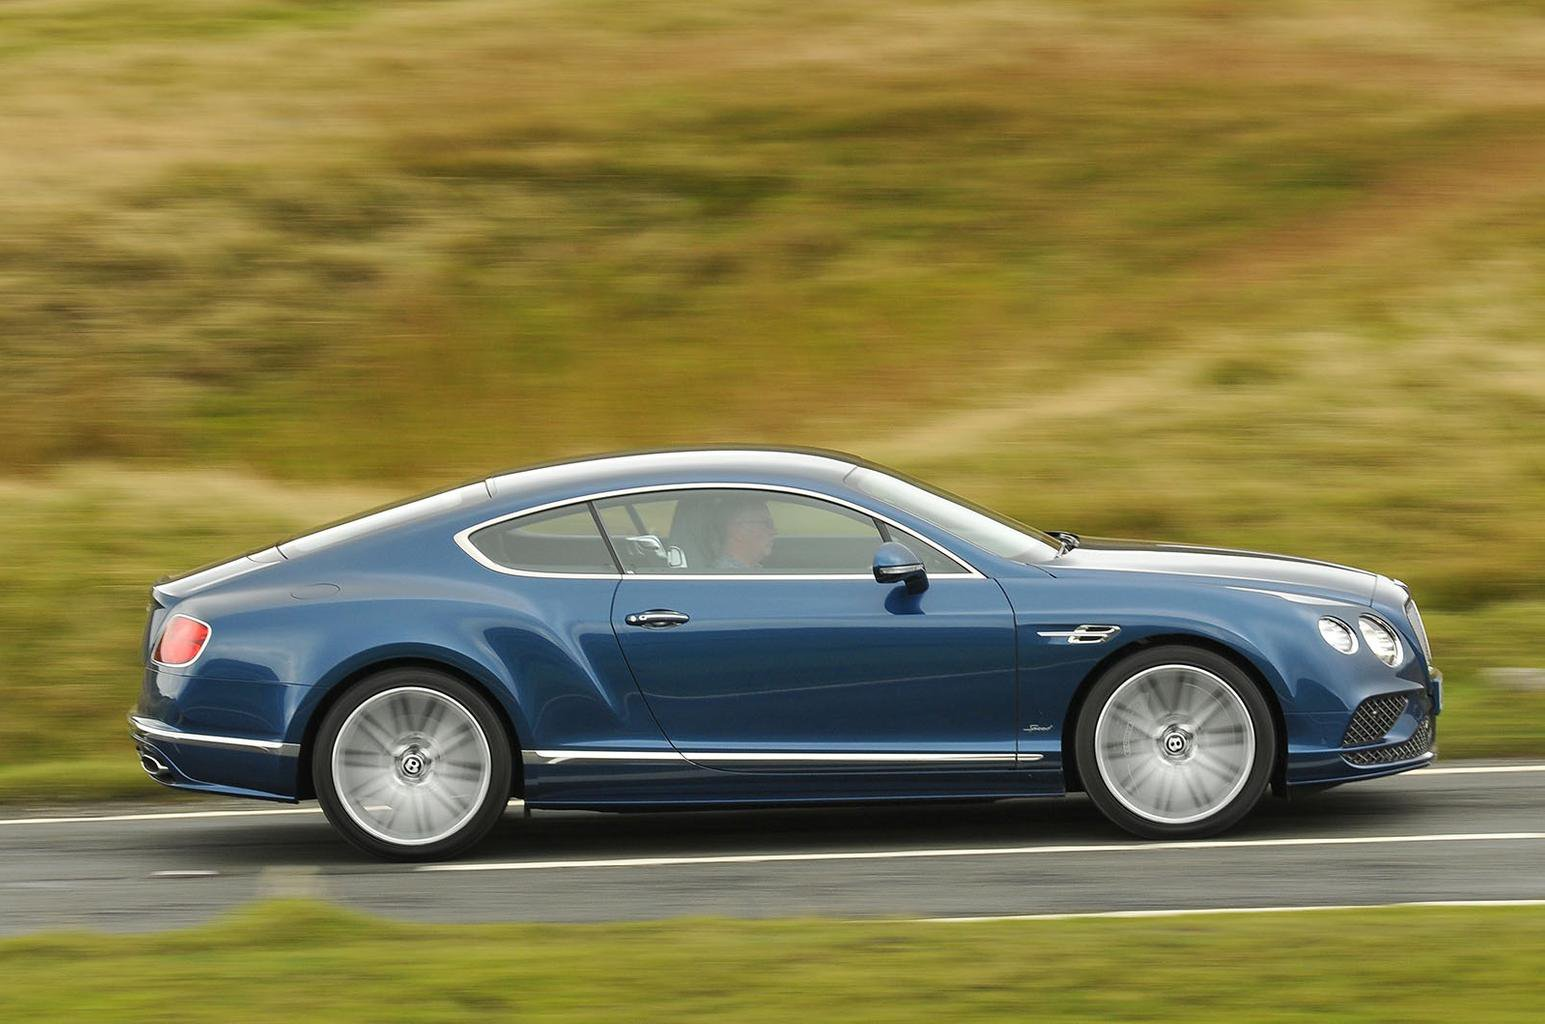 Used Bentley Continental GT 11-present